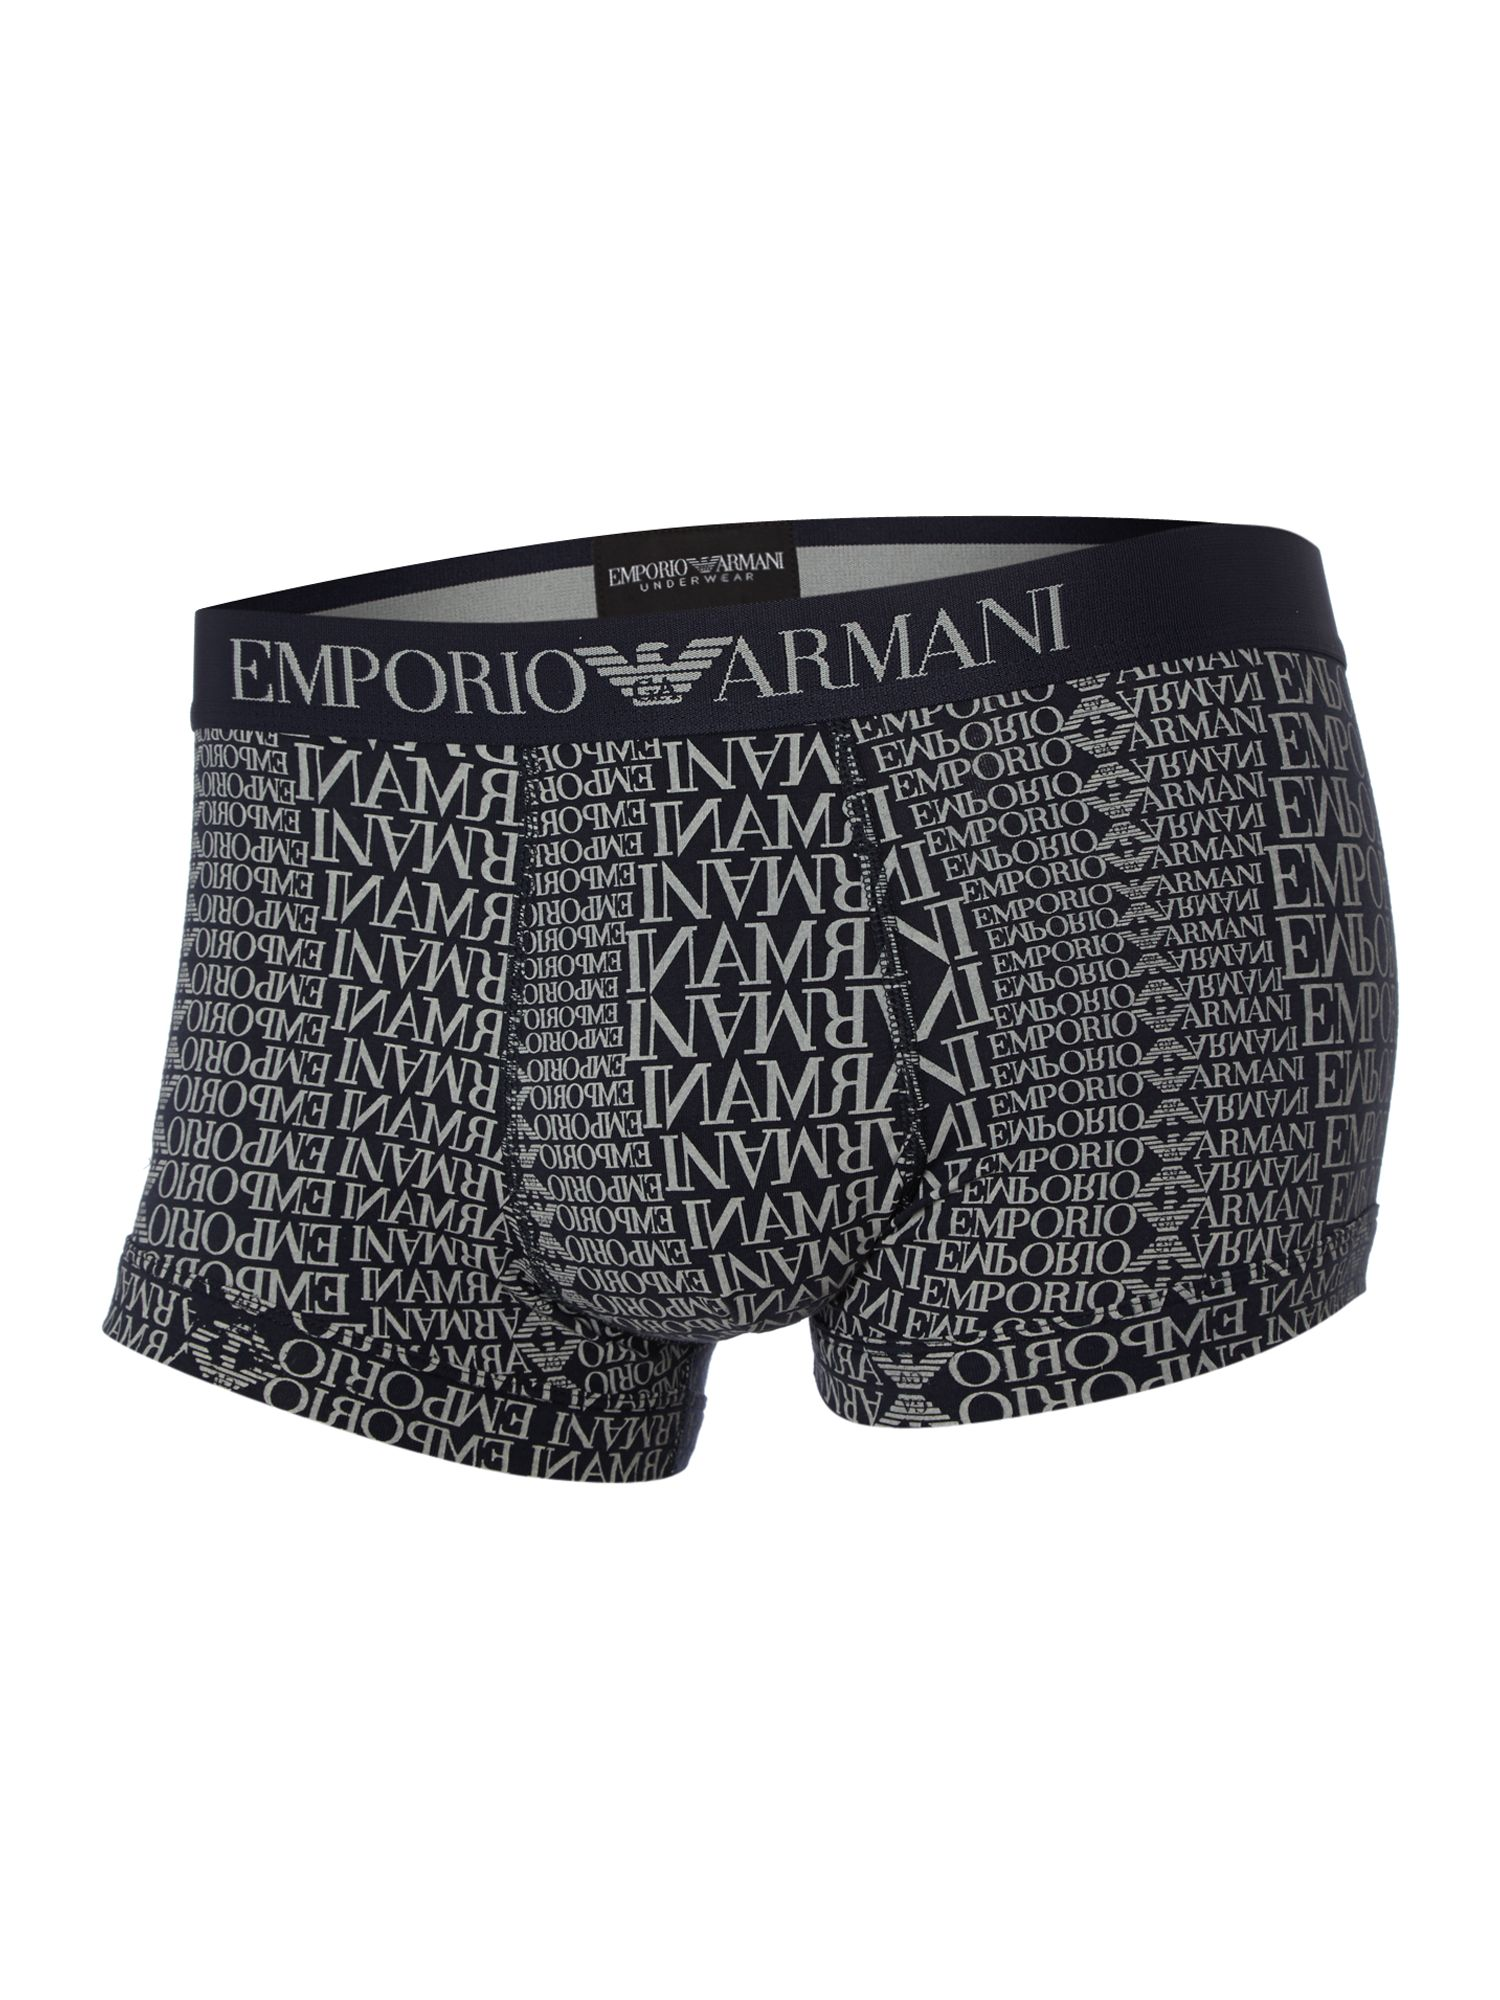 2 pack plain and print underwear trunk